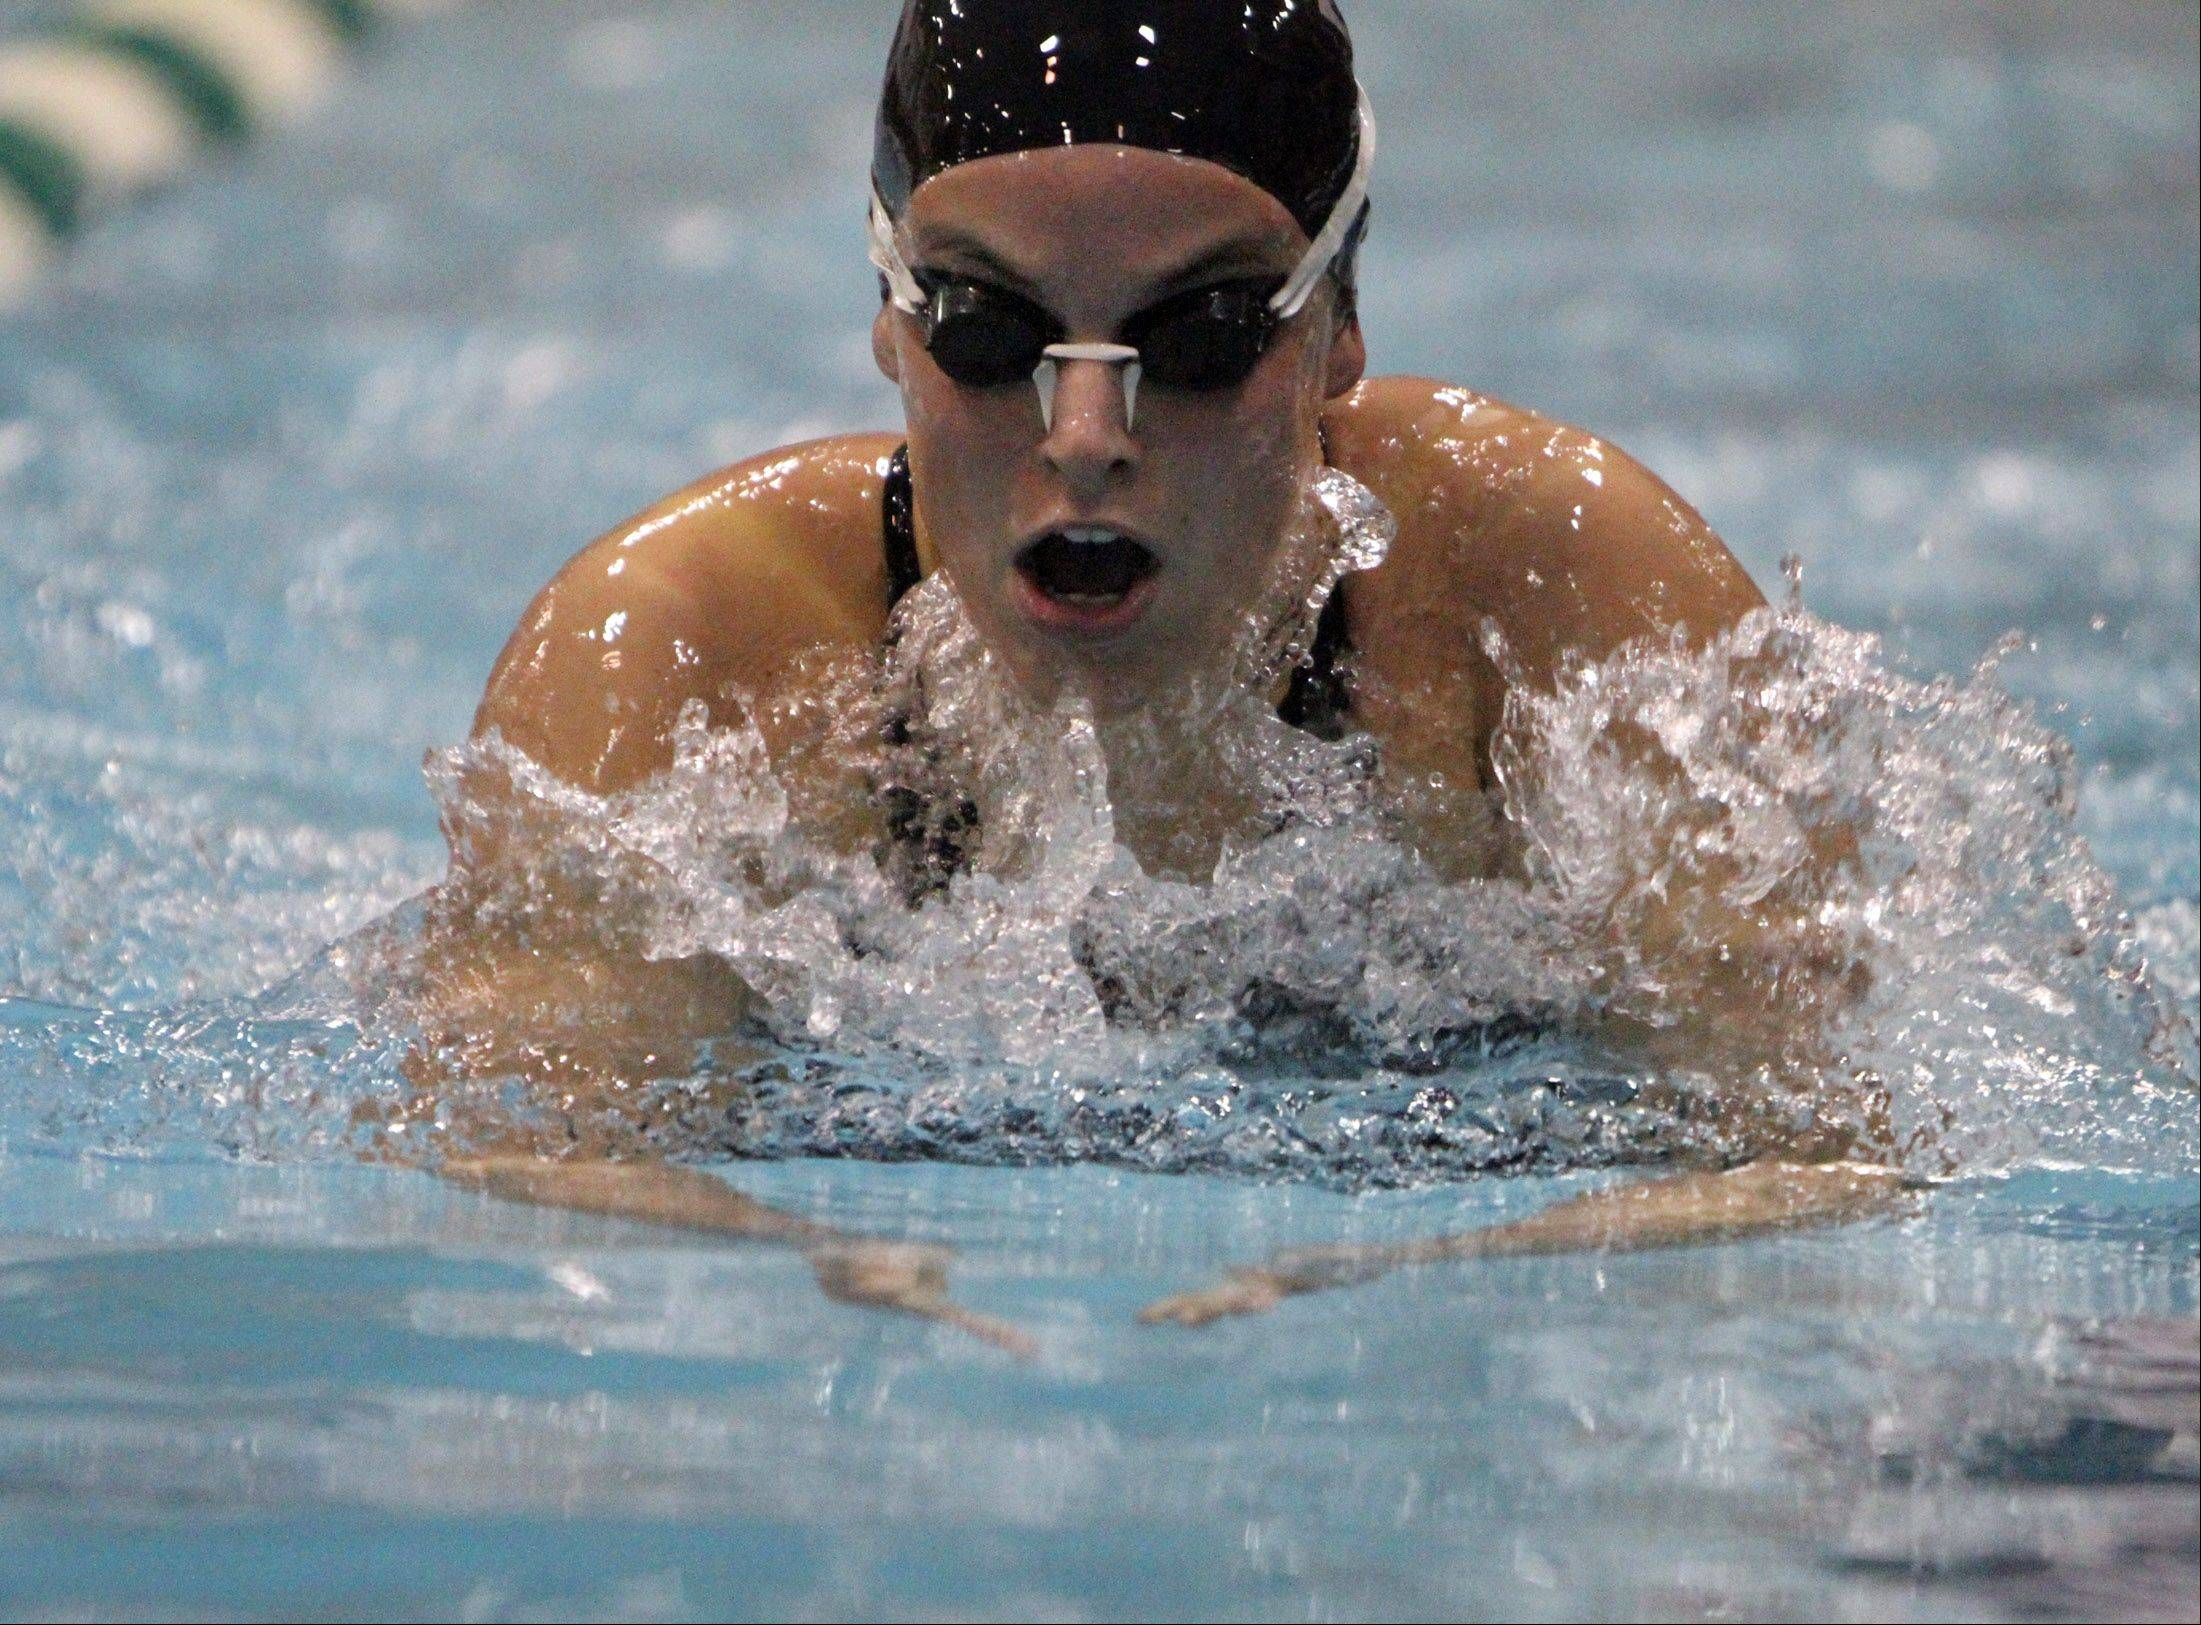 Dundee-Crown's Colleen Champa competes in the 200-yard individual medley at IHSA state final preliminaries in Winnetka on Friday, November 18th.